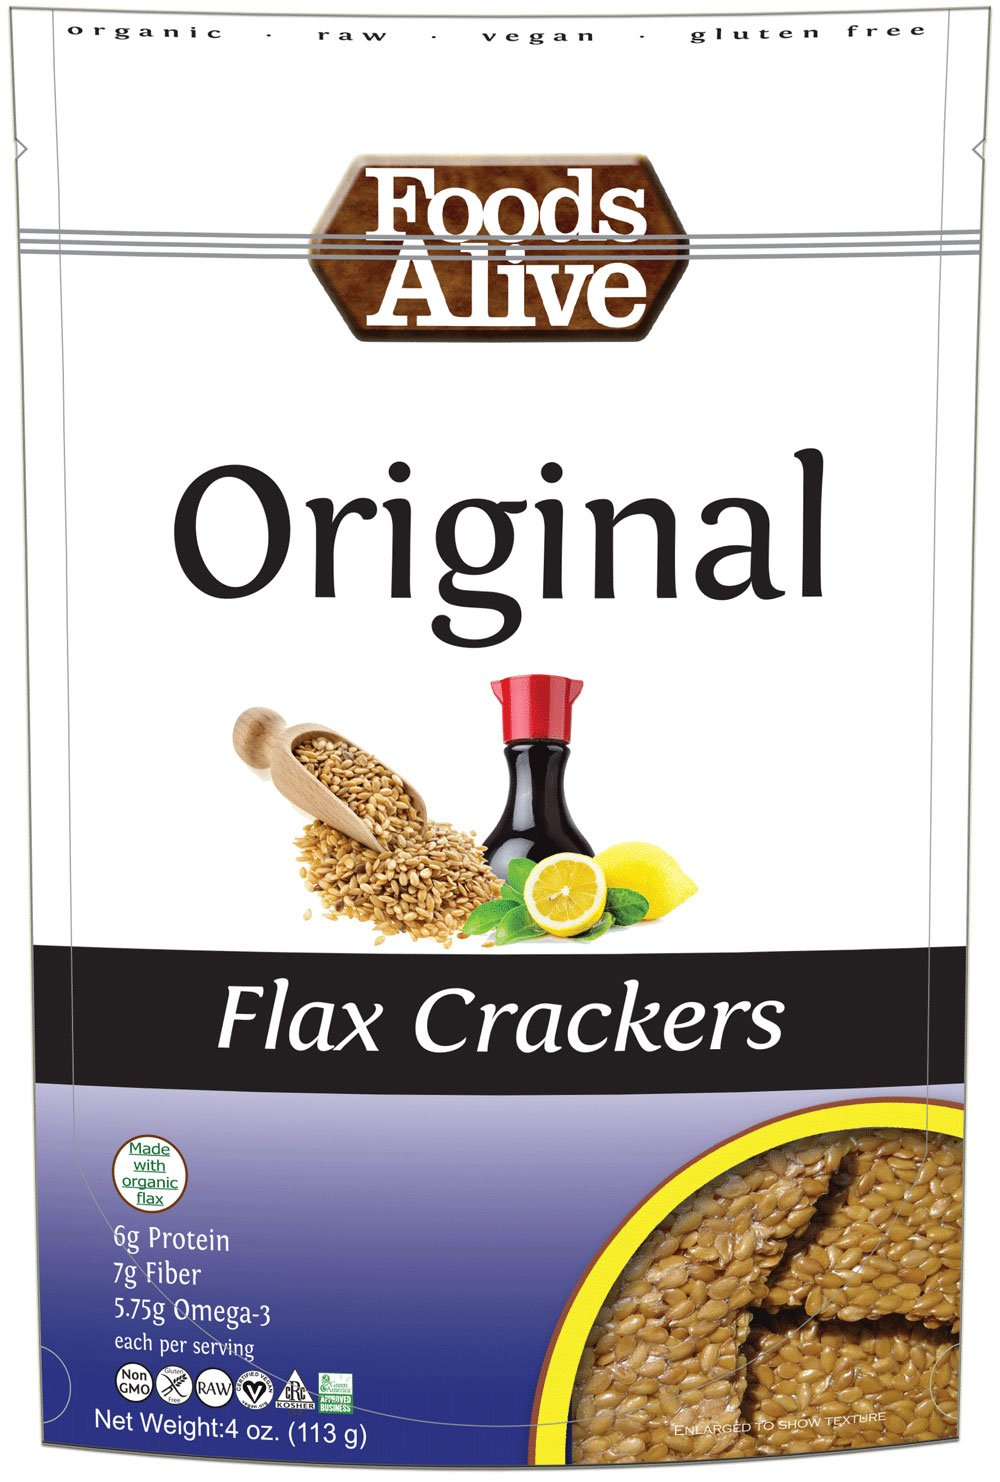 Foods Alive - Organic Golden Flax Crackers Original - 4 oz